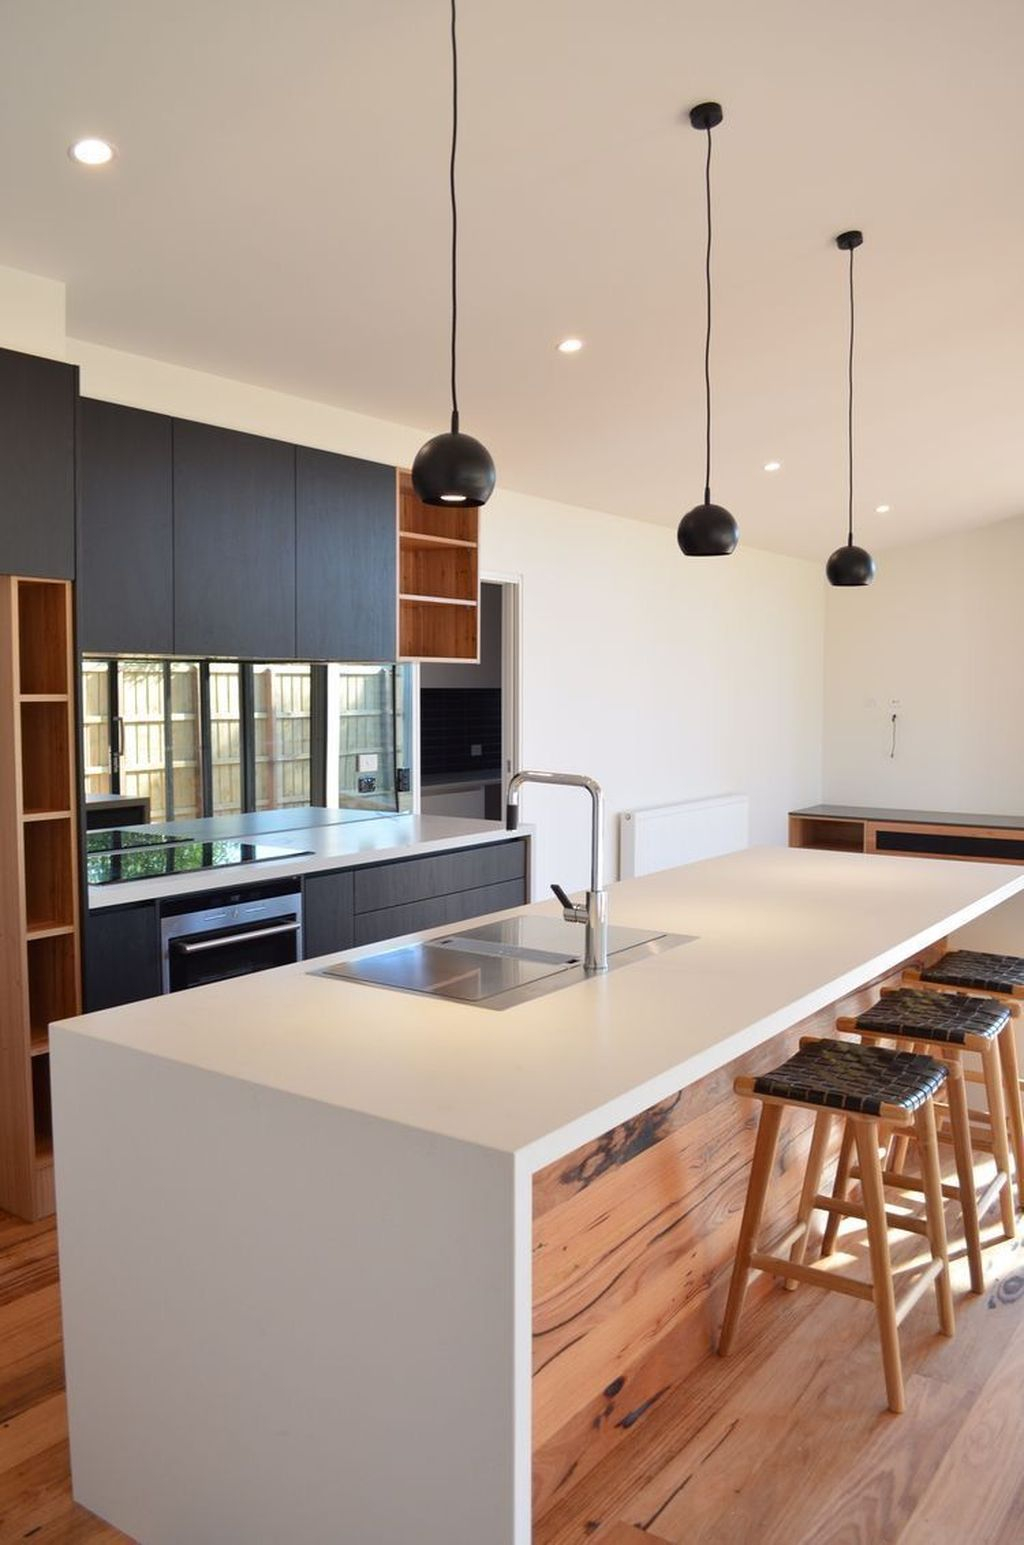 Elegant Minimalist Kitchen Design Ideas For Small Space To Try 21